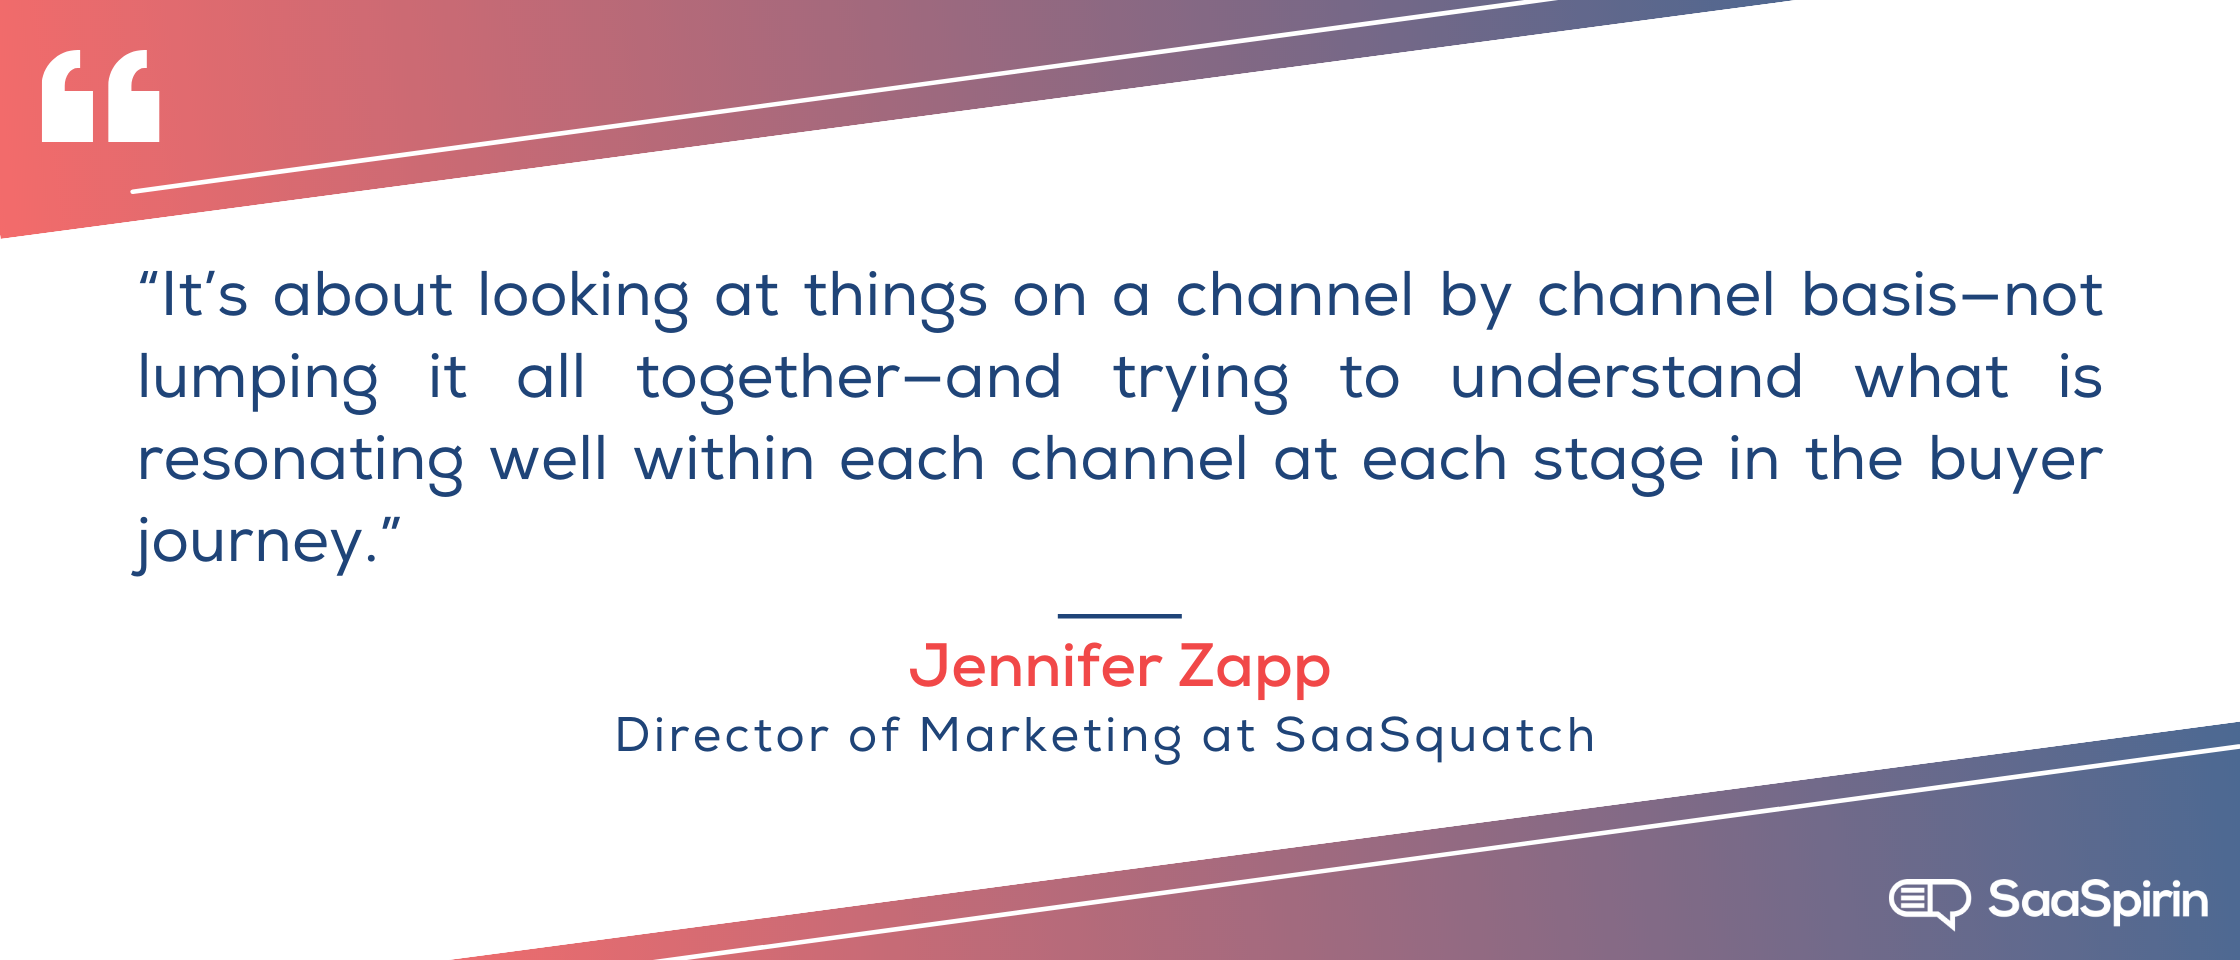 Its-about-looking-at-things-on-a-channel-by-channel-basis-not-lumping-it-all-together-and-trying-to-understand-what-is-resonating-well-within-each-channel-at-each-stage-in-the-buyer-journey.png